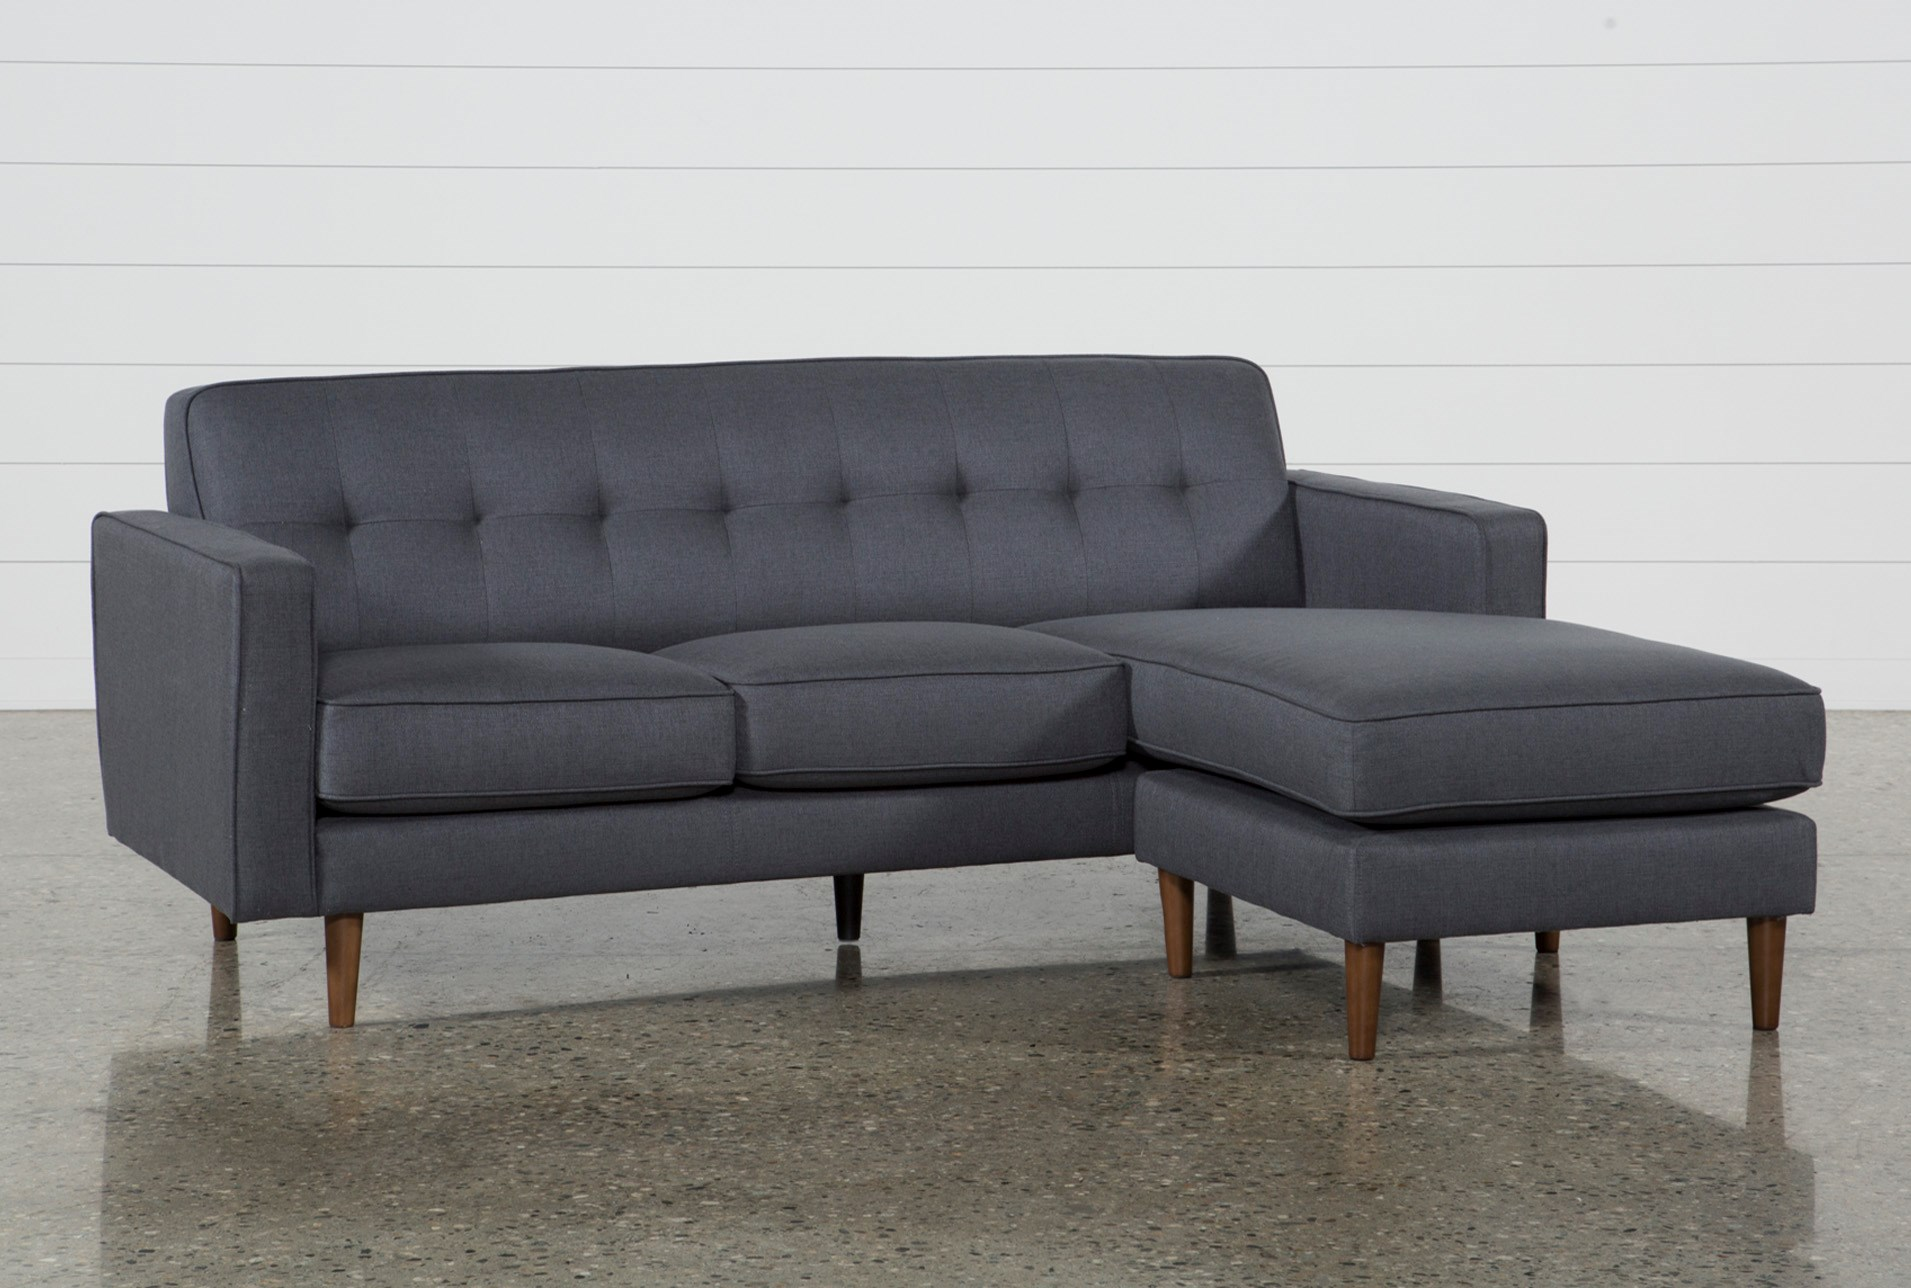 London dark grey reversible sofa chaise qty 1 has been successfully added to your cart